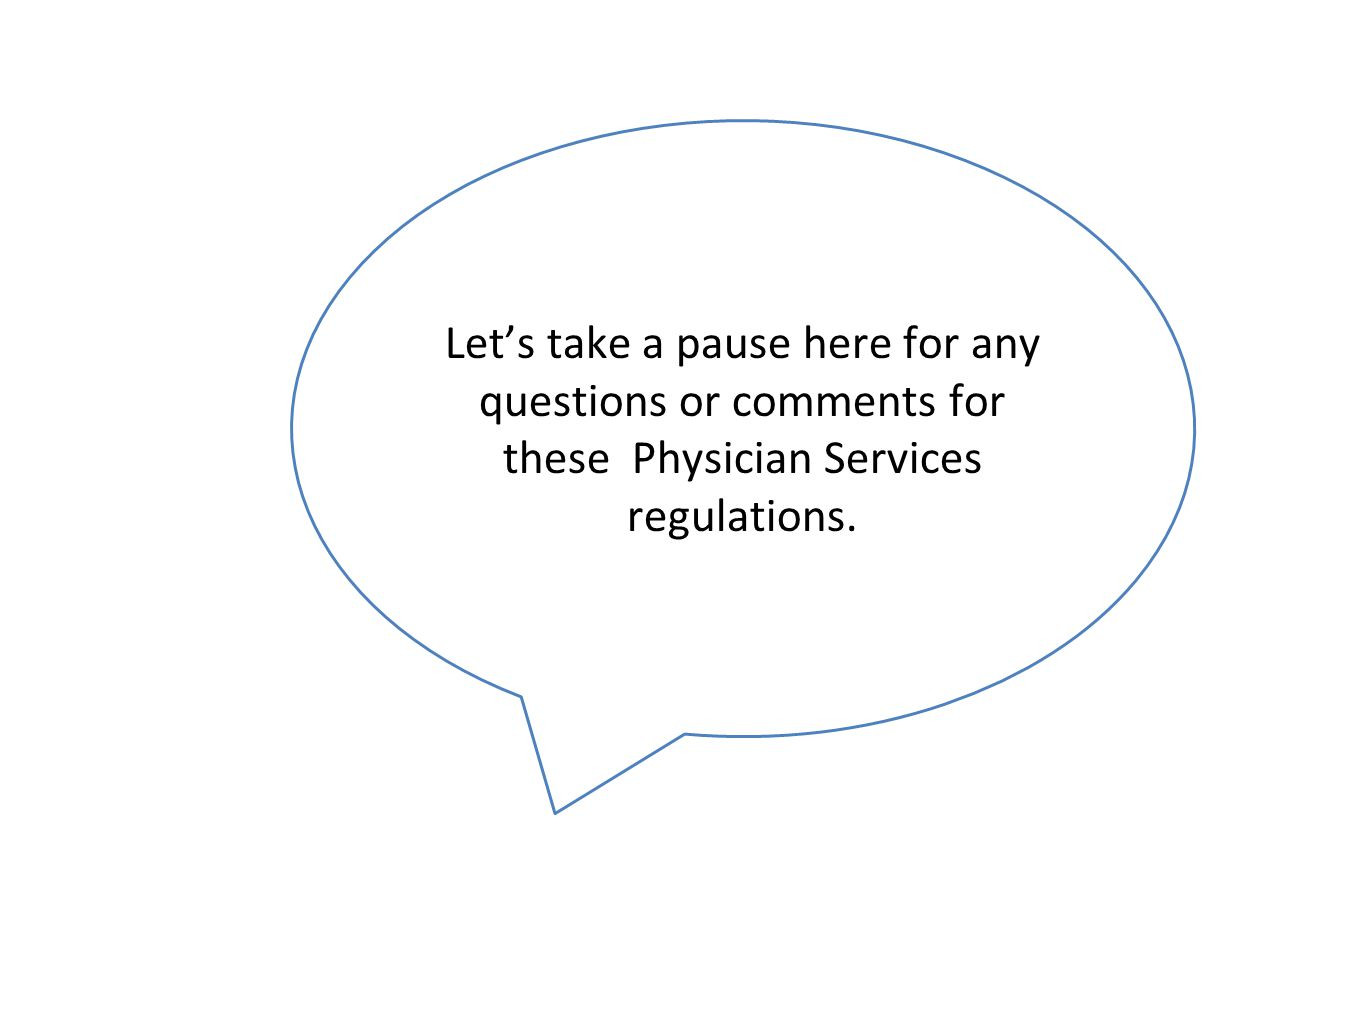 Let's take a pause here for any questions or comments for these Physician Services regulations.